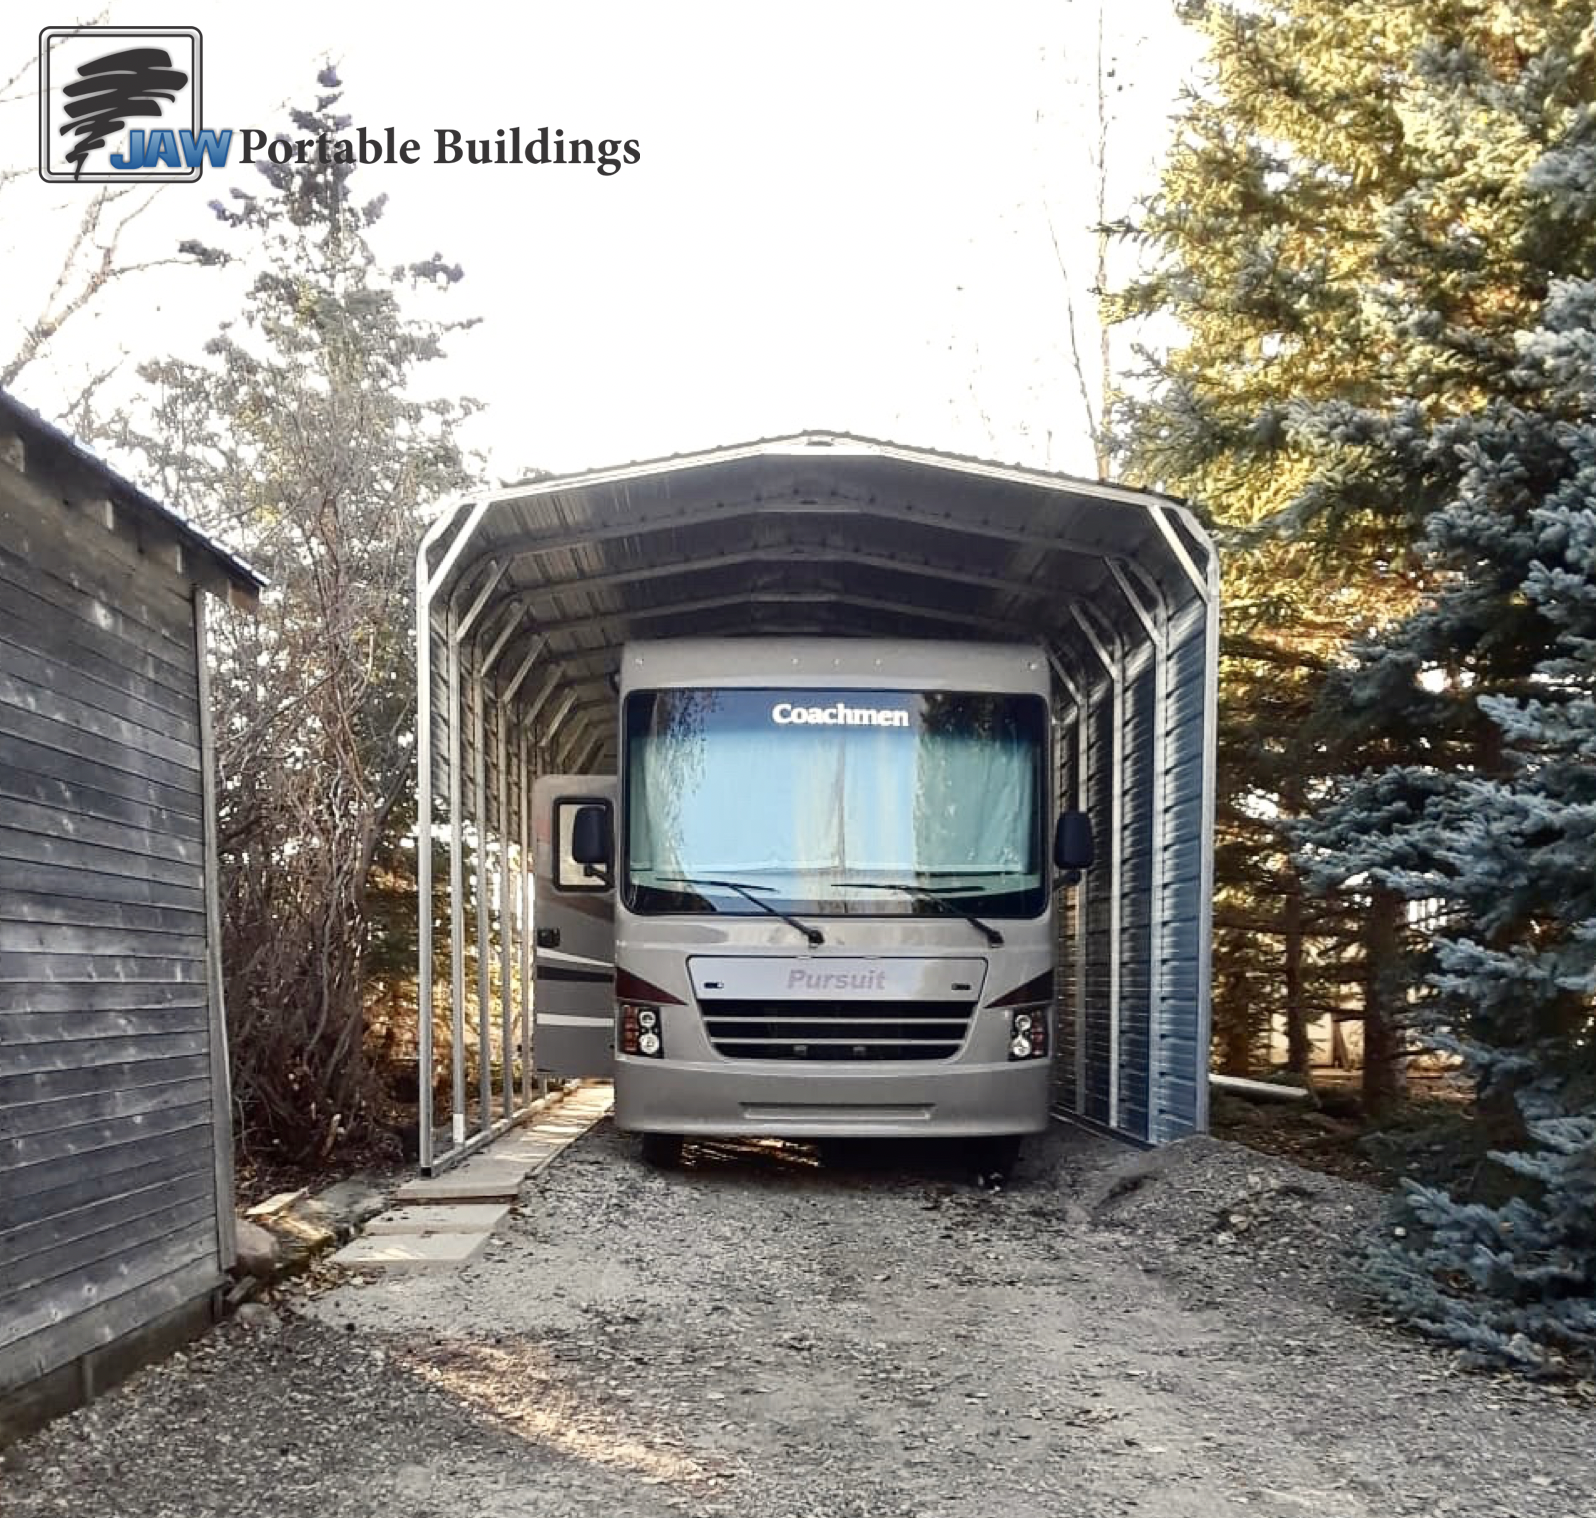 Portable RV Storage Shelter - JAW Portable Buildings